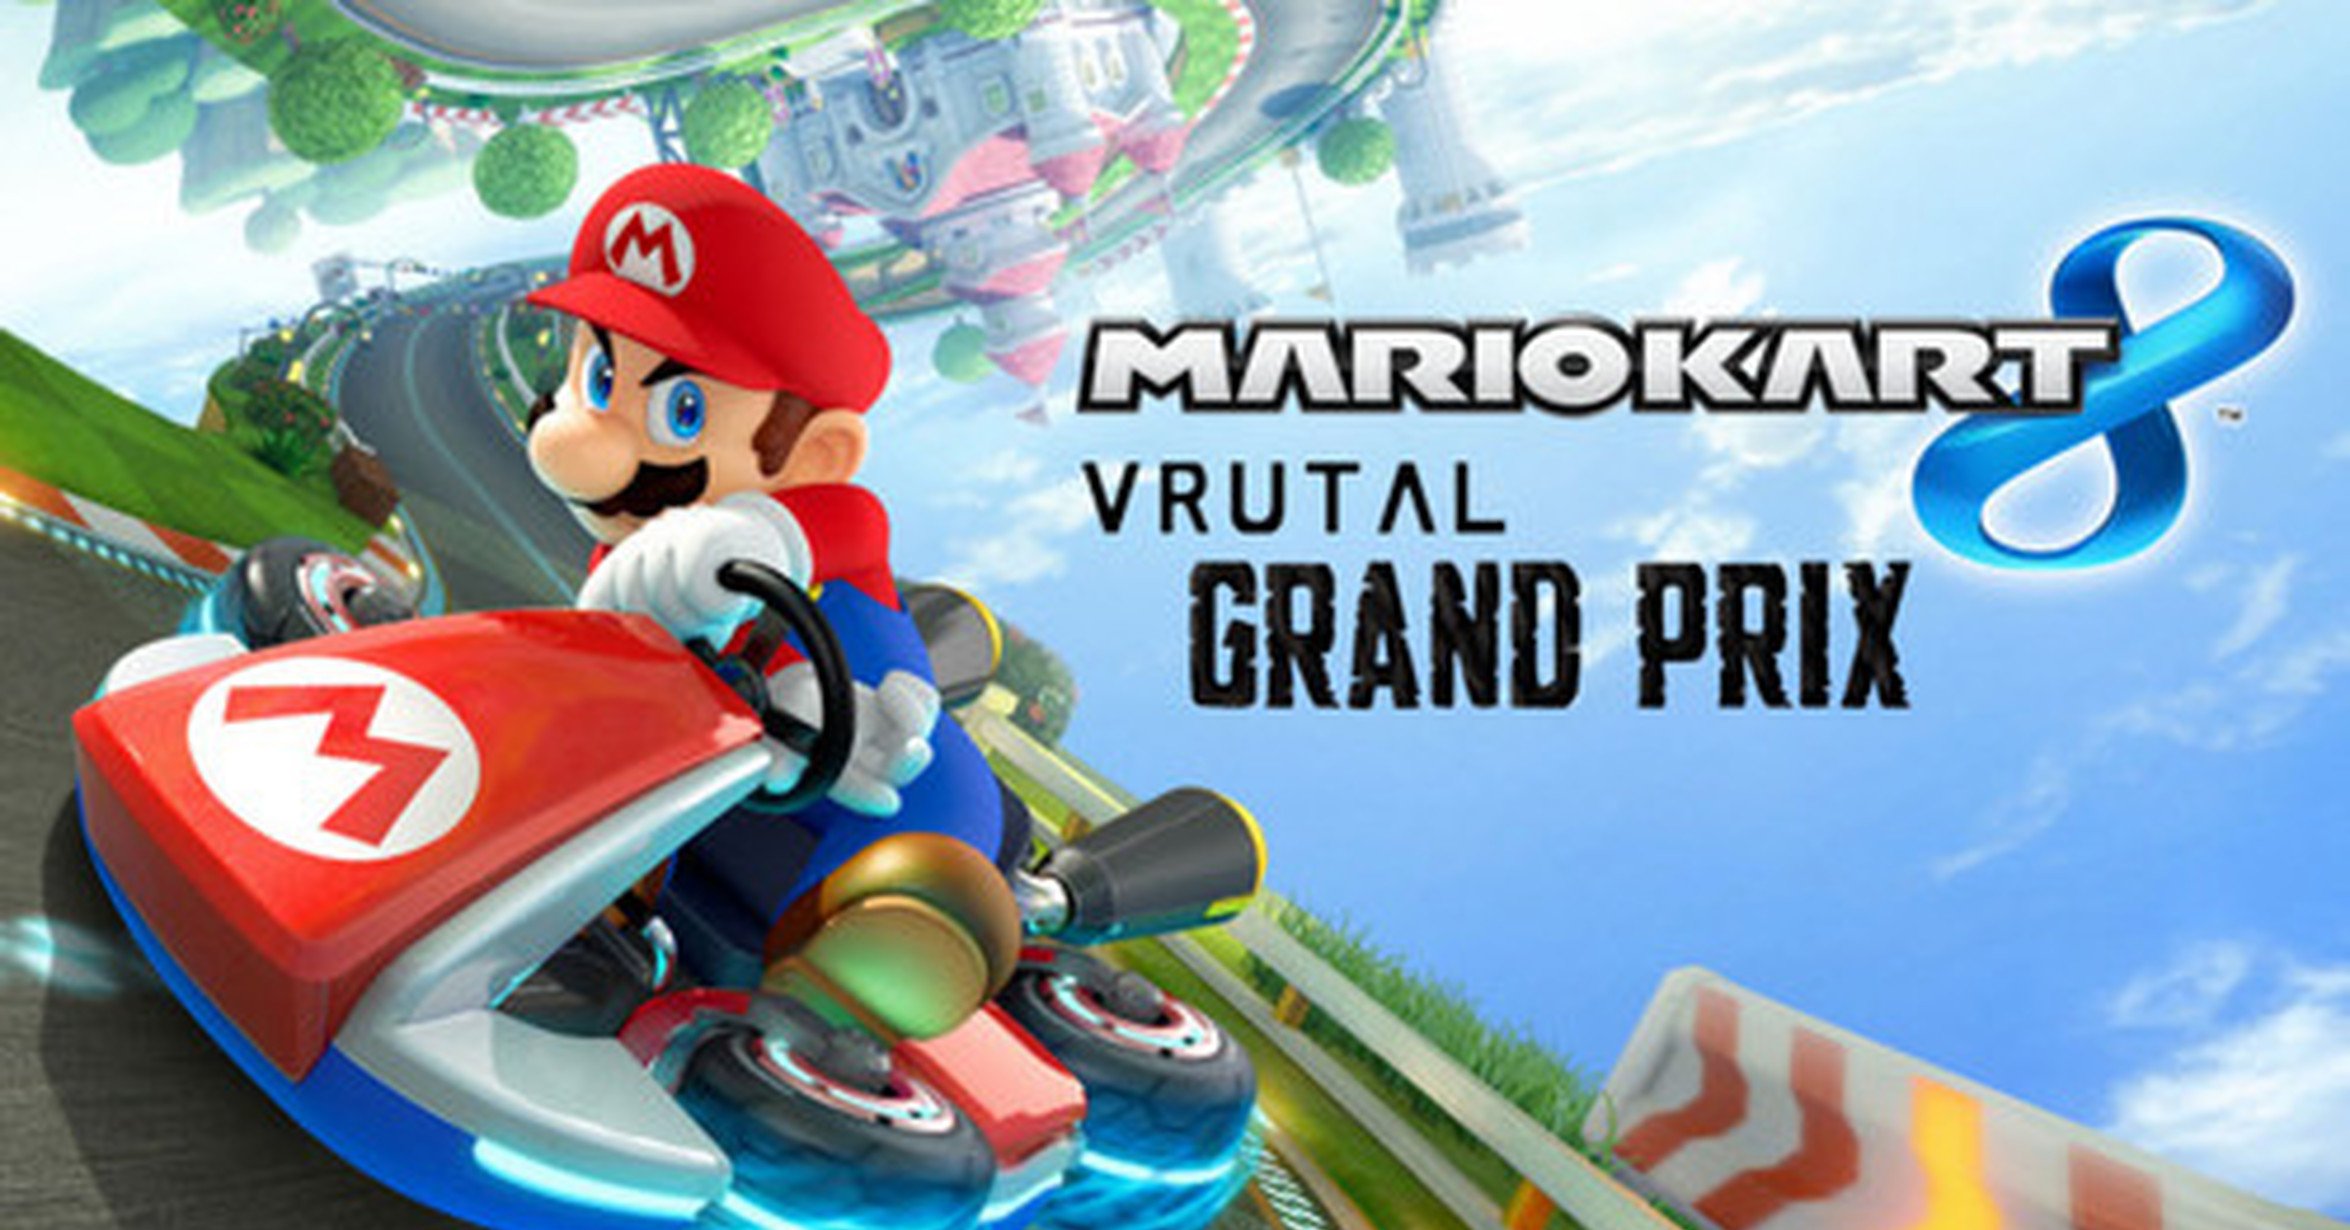 vrutal torneo vrutal grand prix en mario kart 8. Black Bedroom Furniture Sets. Home Design Ideas